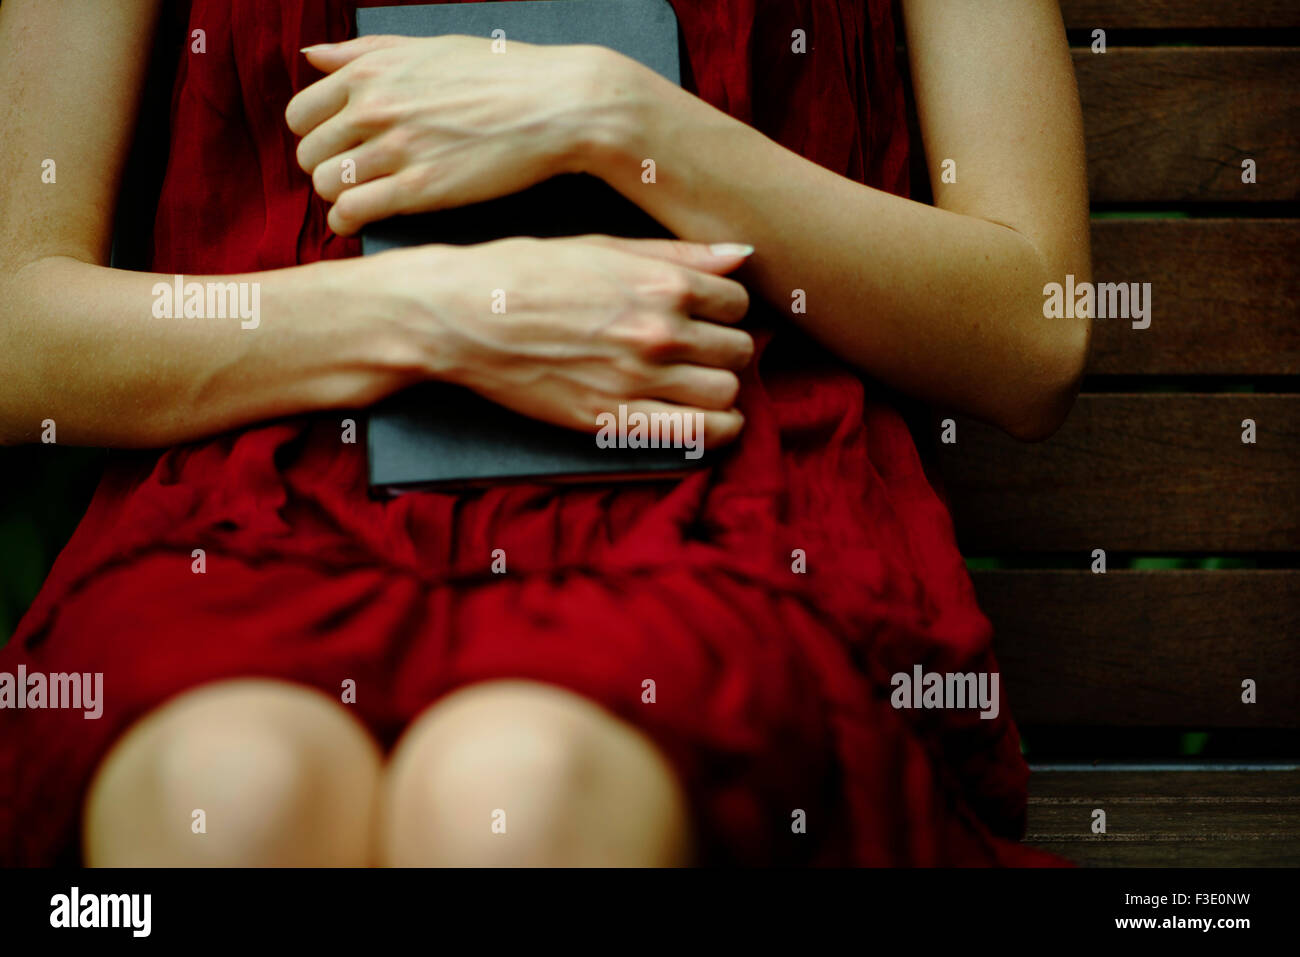 Woman sitting on bench, holding diary protectively against chest - Stock Image